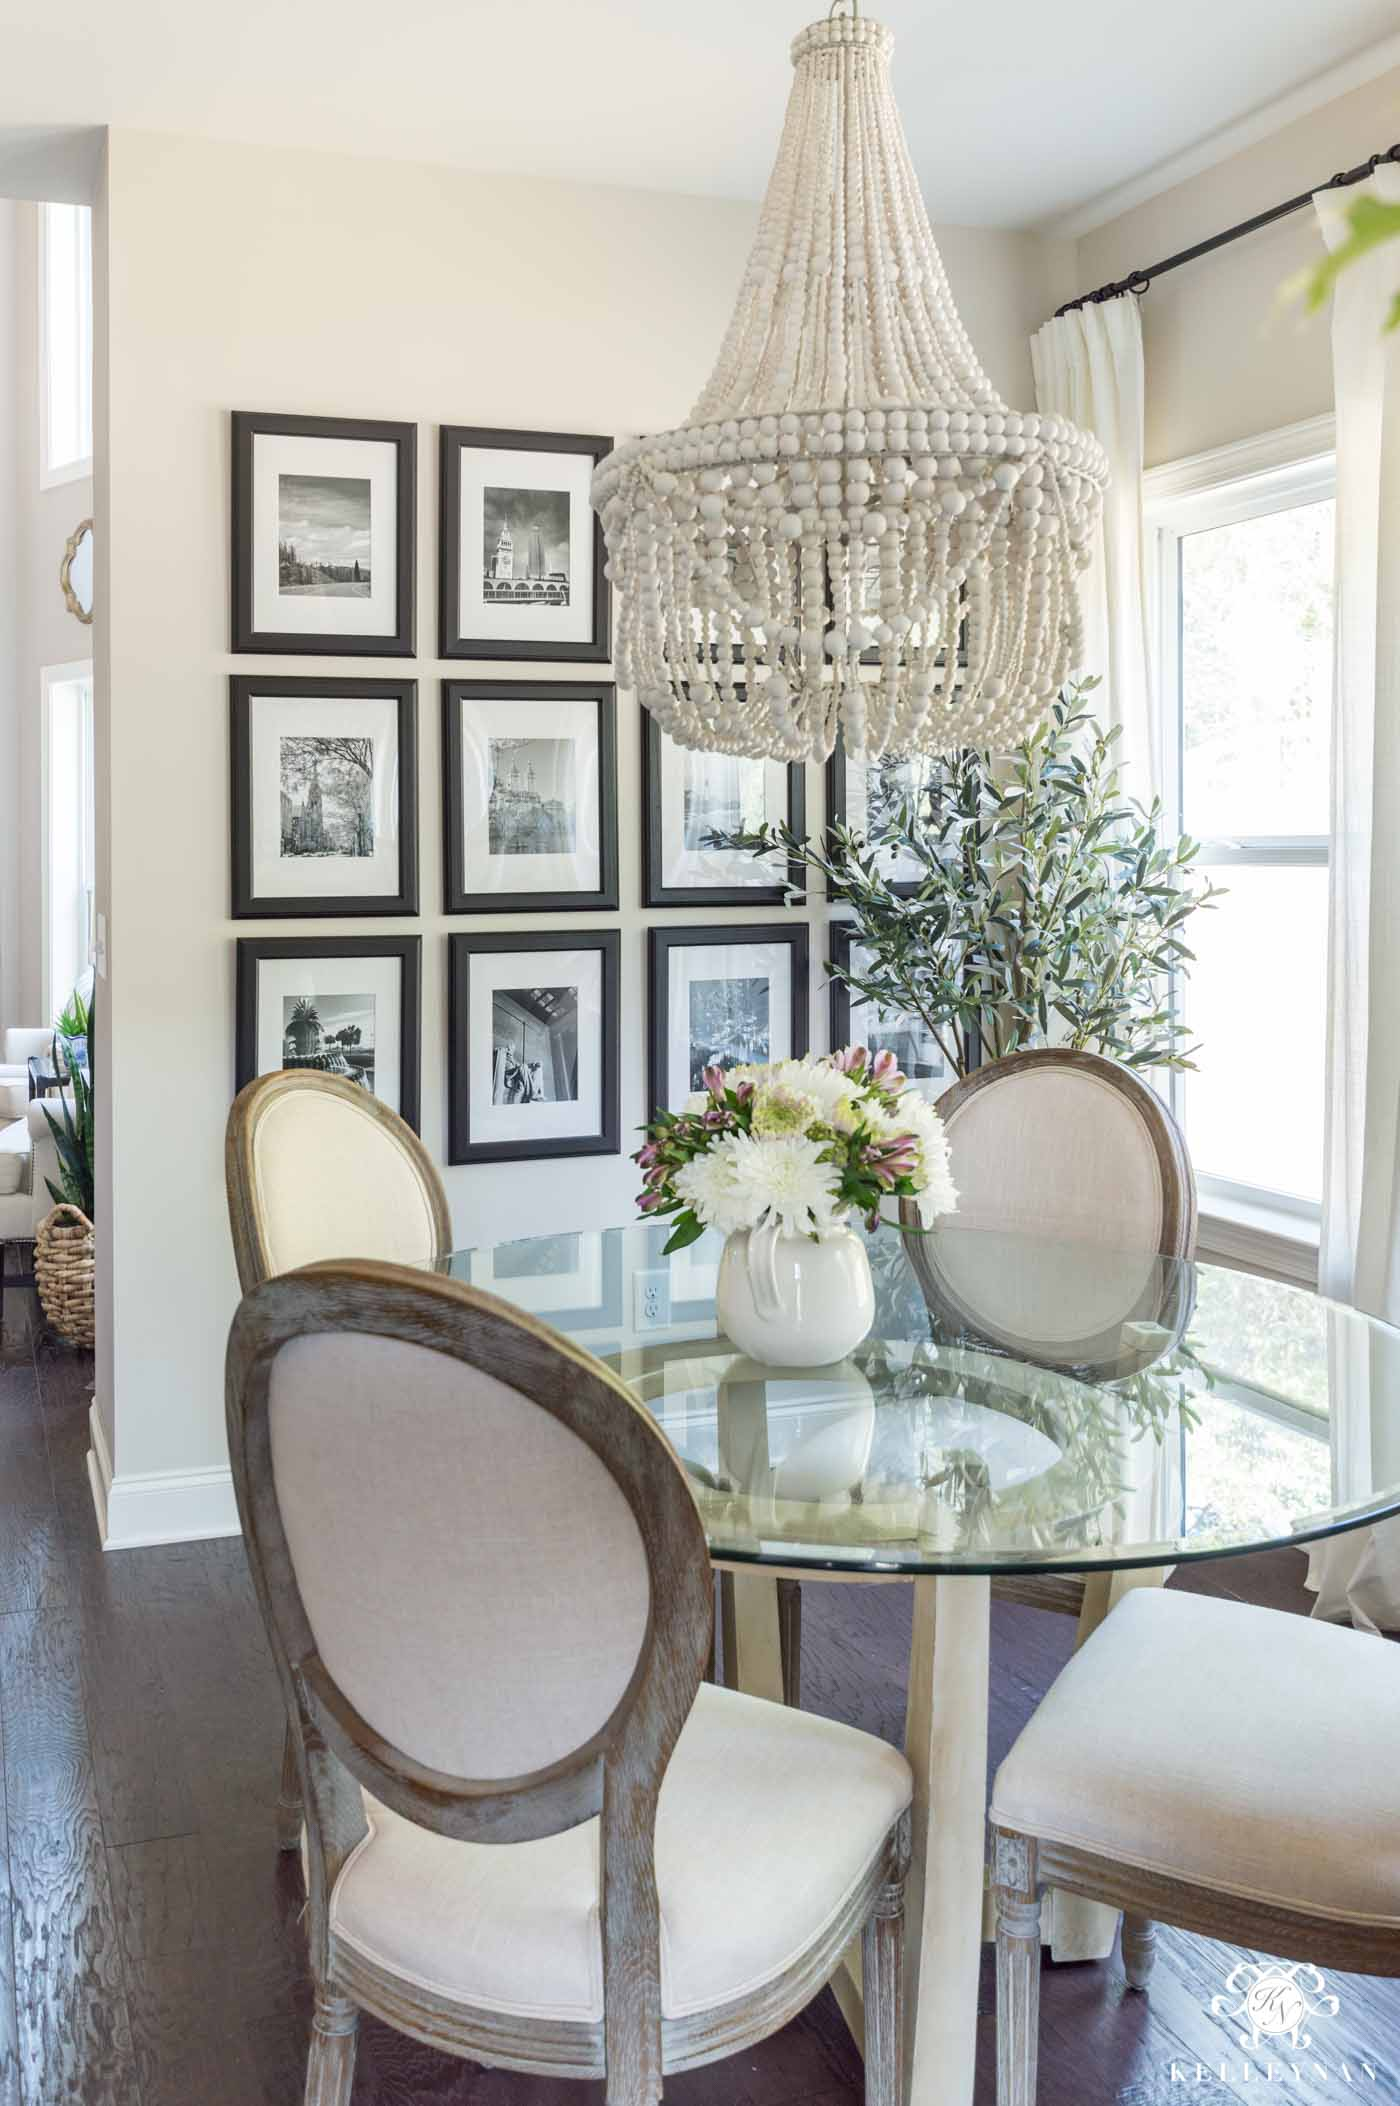 Breakfast Nook in Edgecomb Gray by Sherwin Williams with Black frame gallery Wall